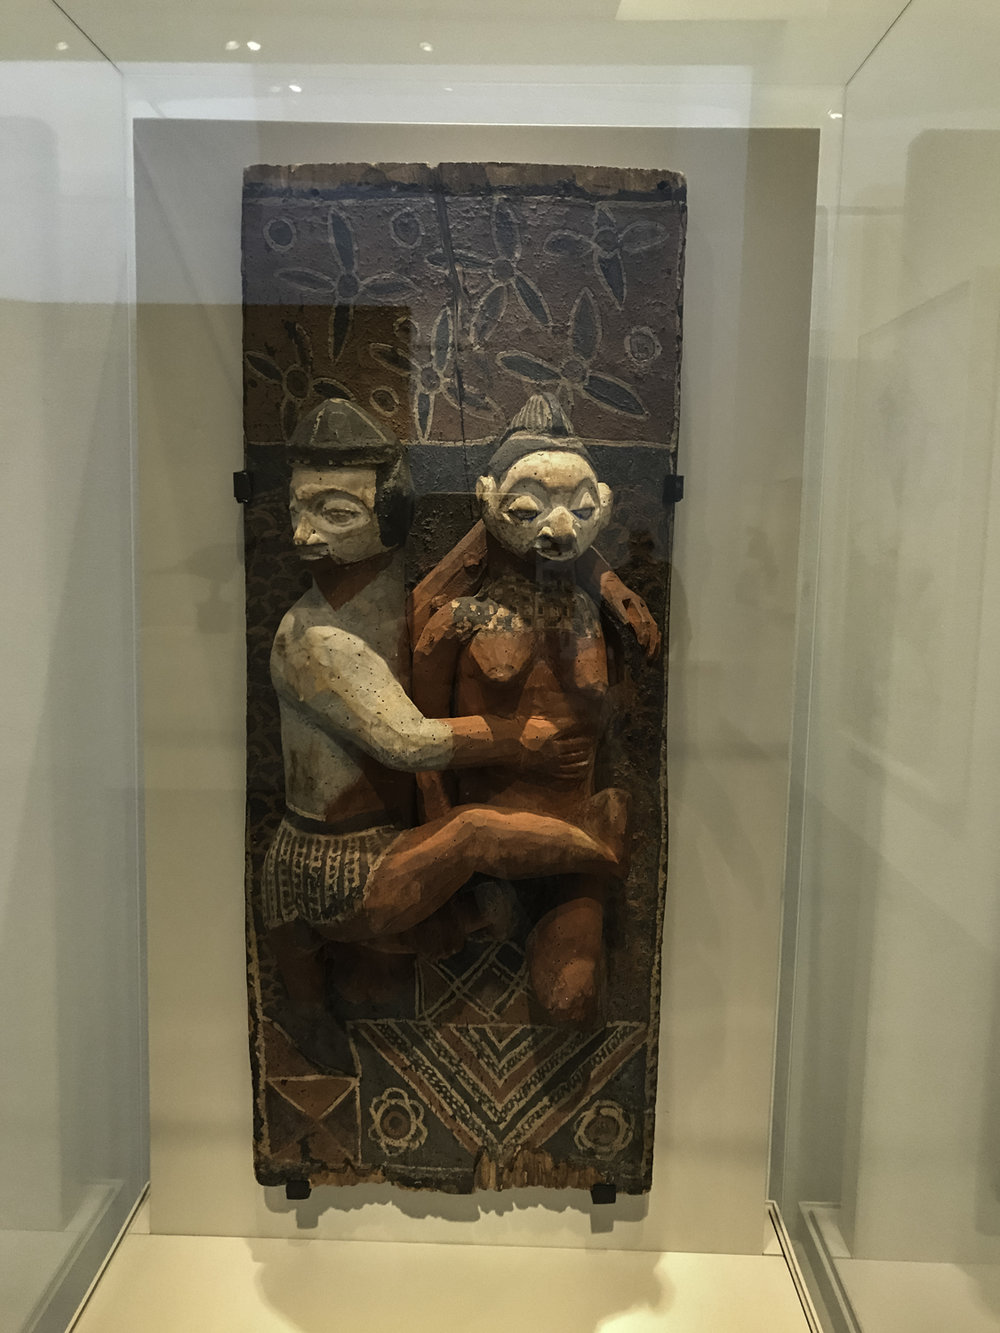 "Panel,   wood with pigment, Nkanu culture.  This was another example in the exhibit which sought to show how other cultures influenced Picasso.  ""This panel shows a couple whose arms are entwined, yet they look in opposite directions.  Displayed in a restricted area, the young people who saw it learned about proper sexual behavior.  Although Picasso also depicted couples embracing, his works, in contrast, often have vivid and erotic intensity."""